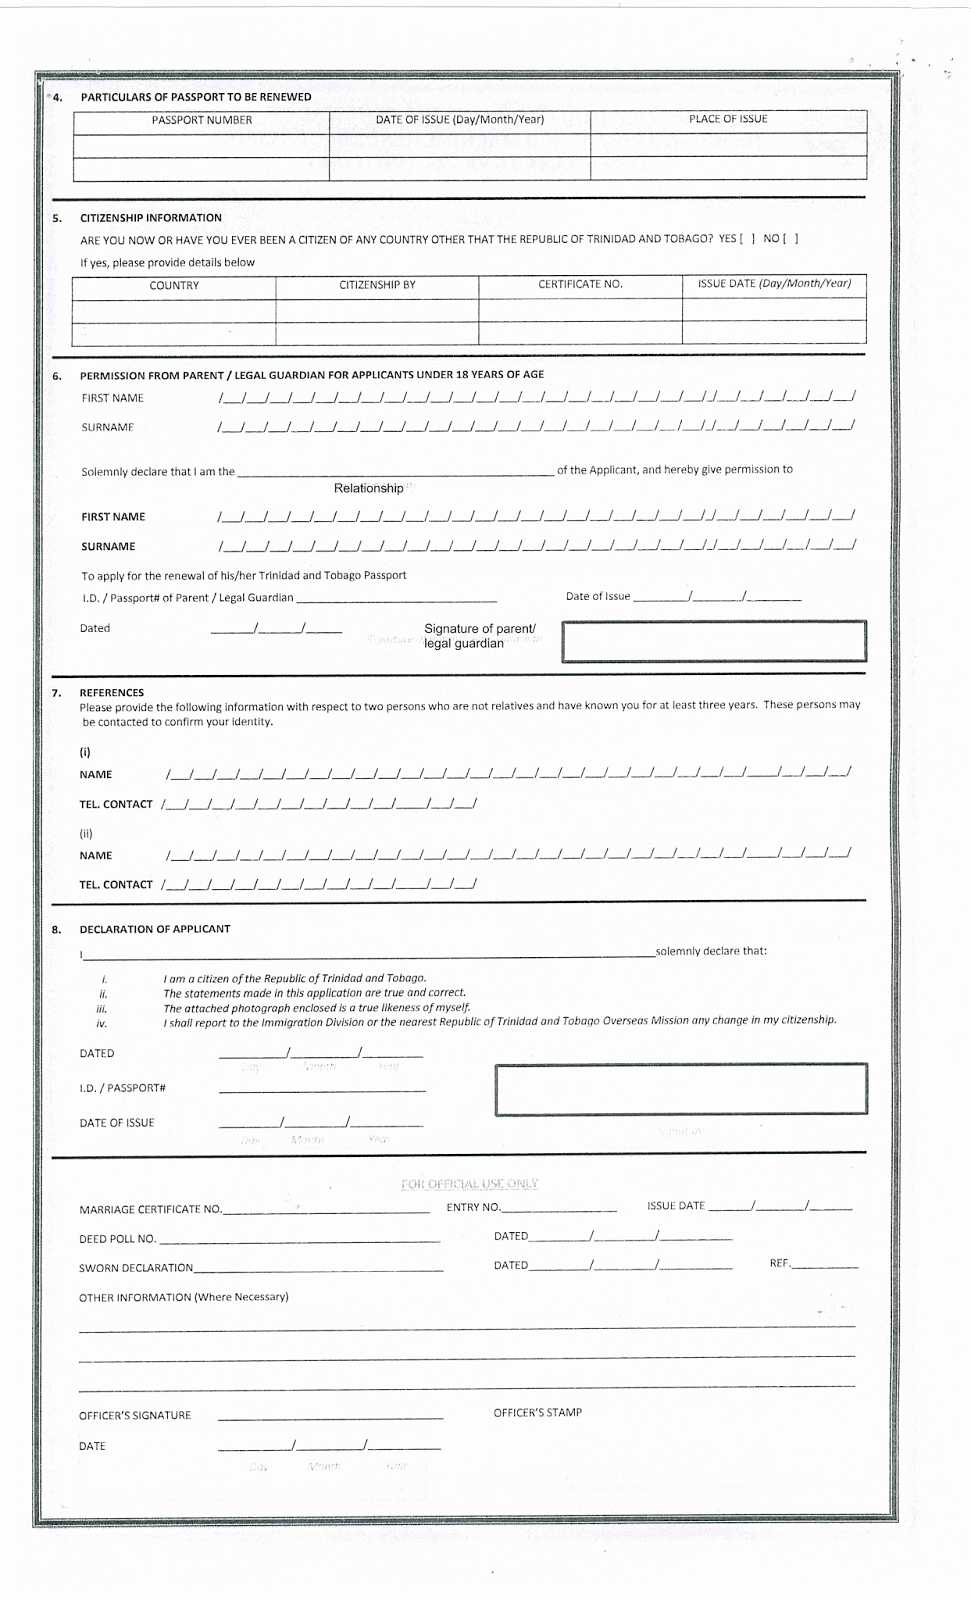 How to renew Trinidad and Tobago Passport – Passport Renewal Application Form